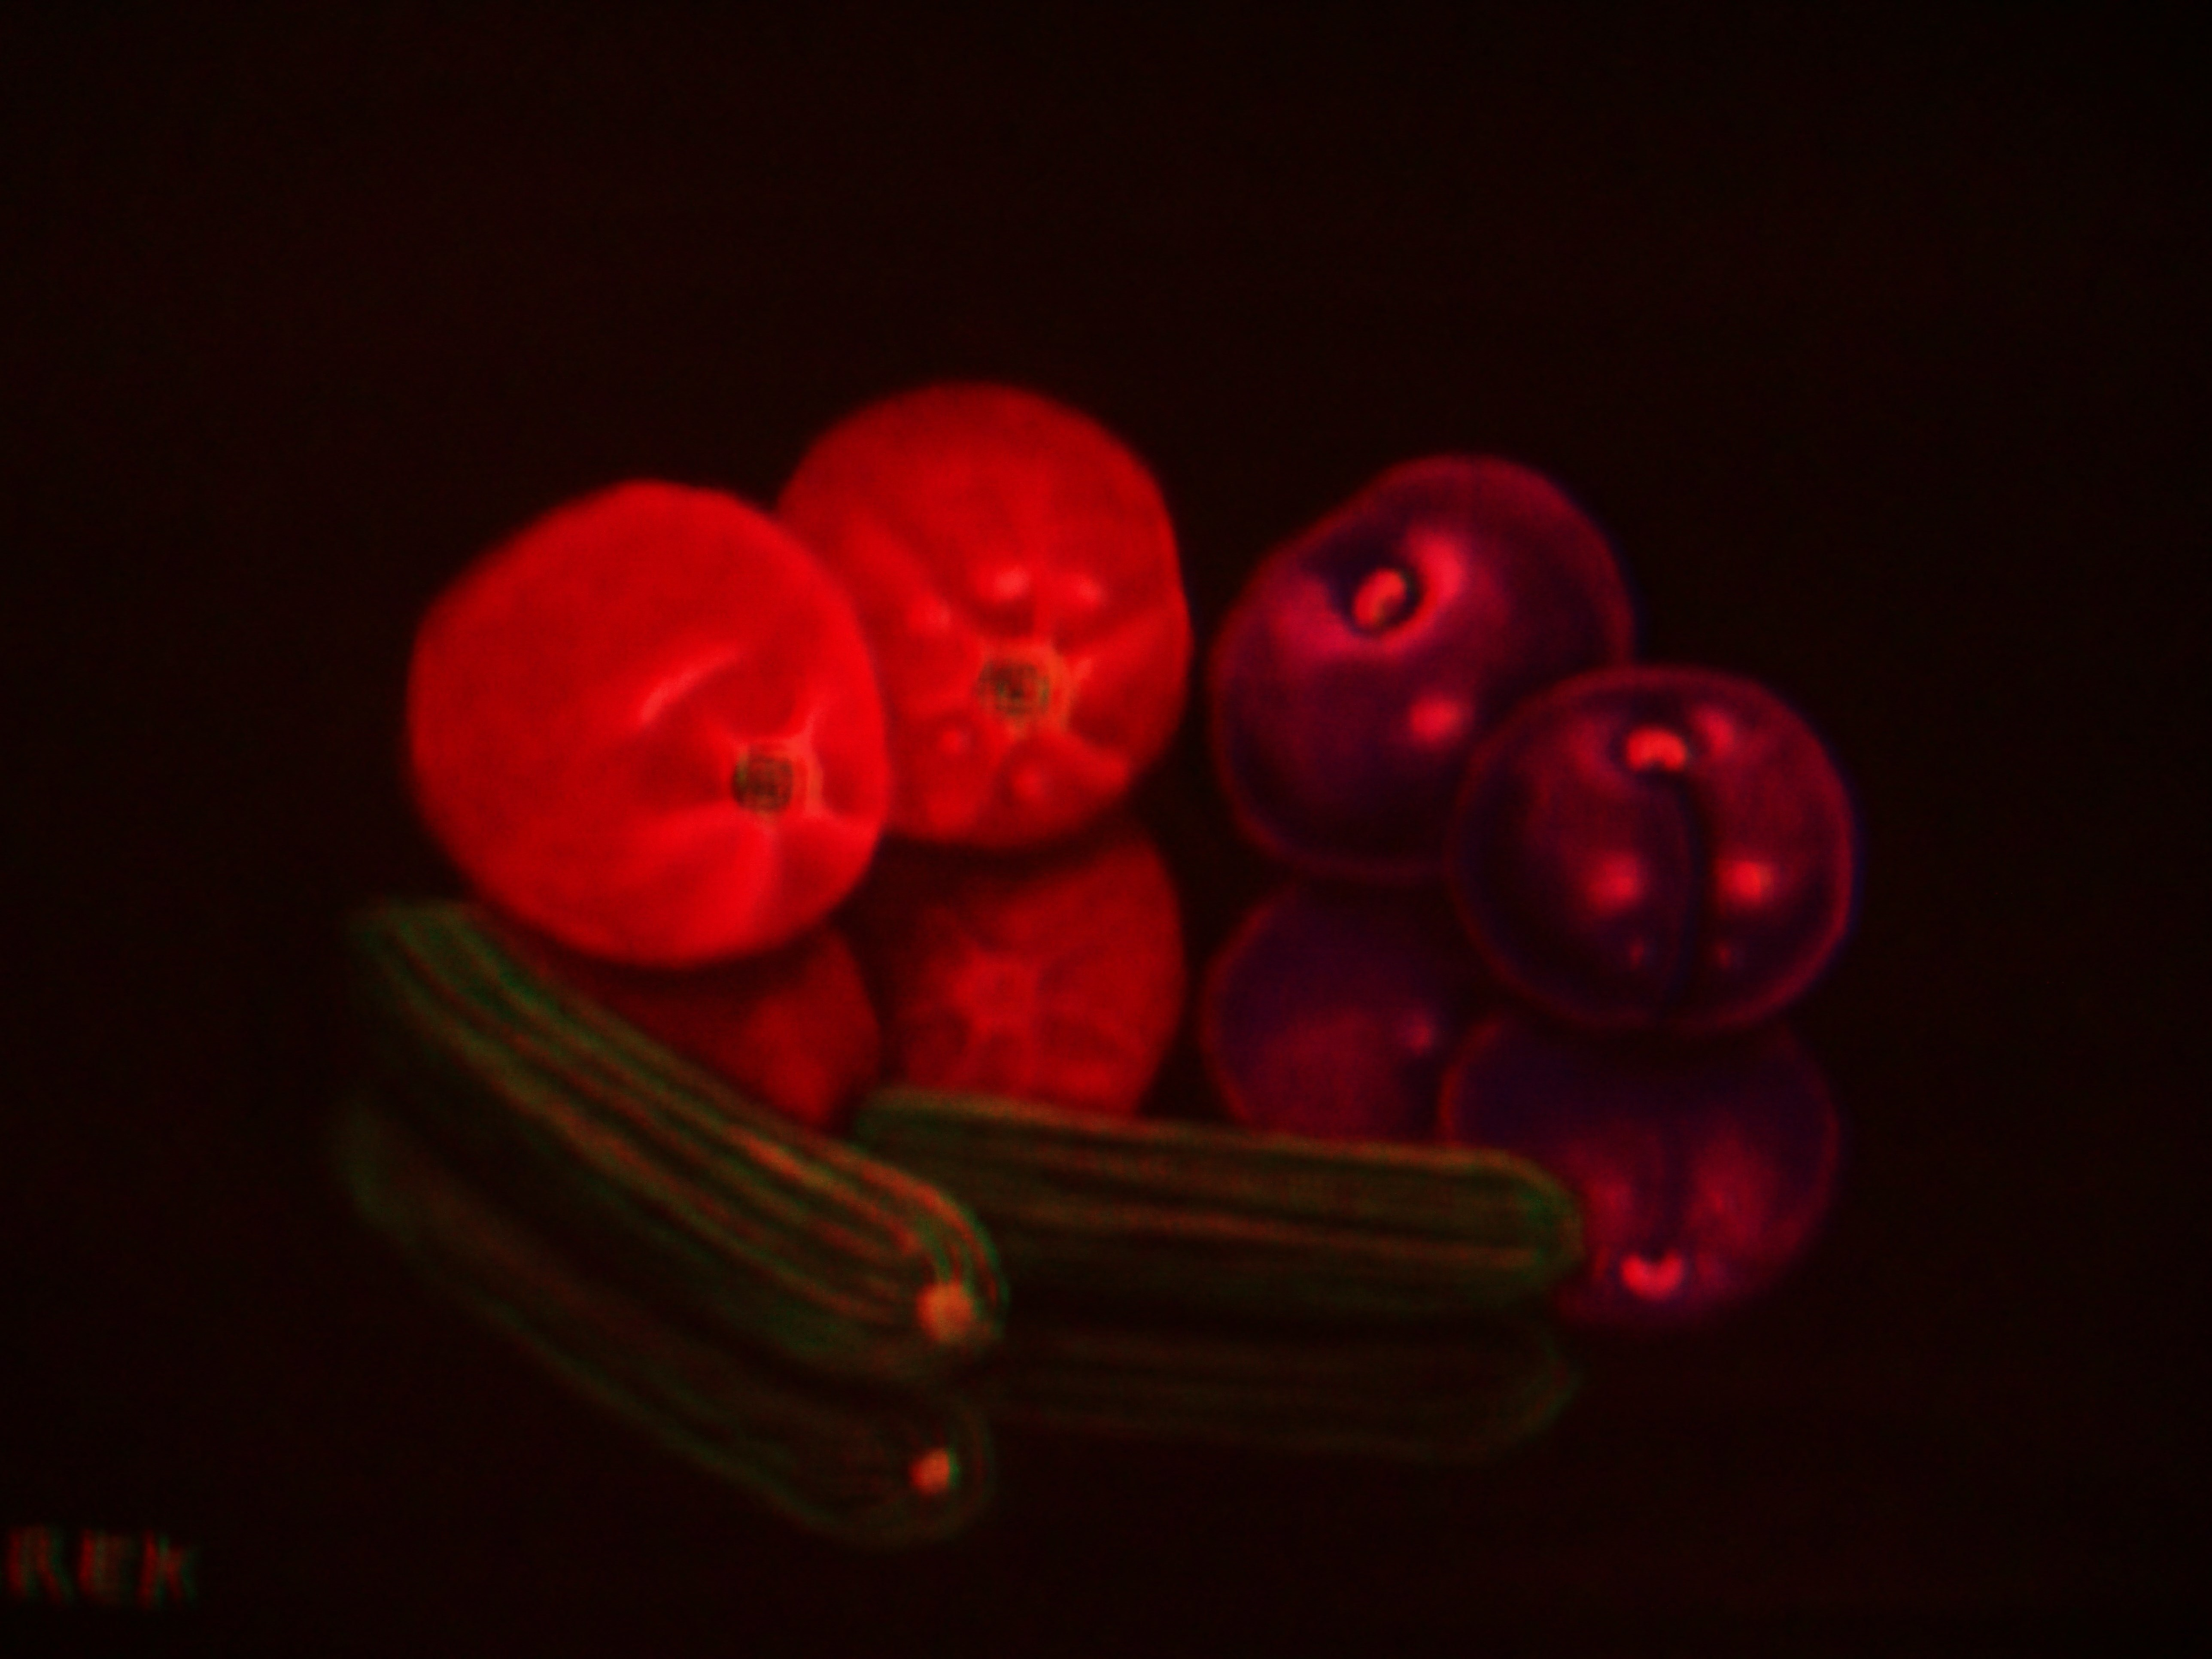 Cucumbers , Tomatoes and Prunes (10)(10)(3)